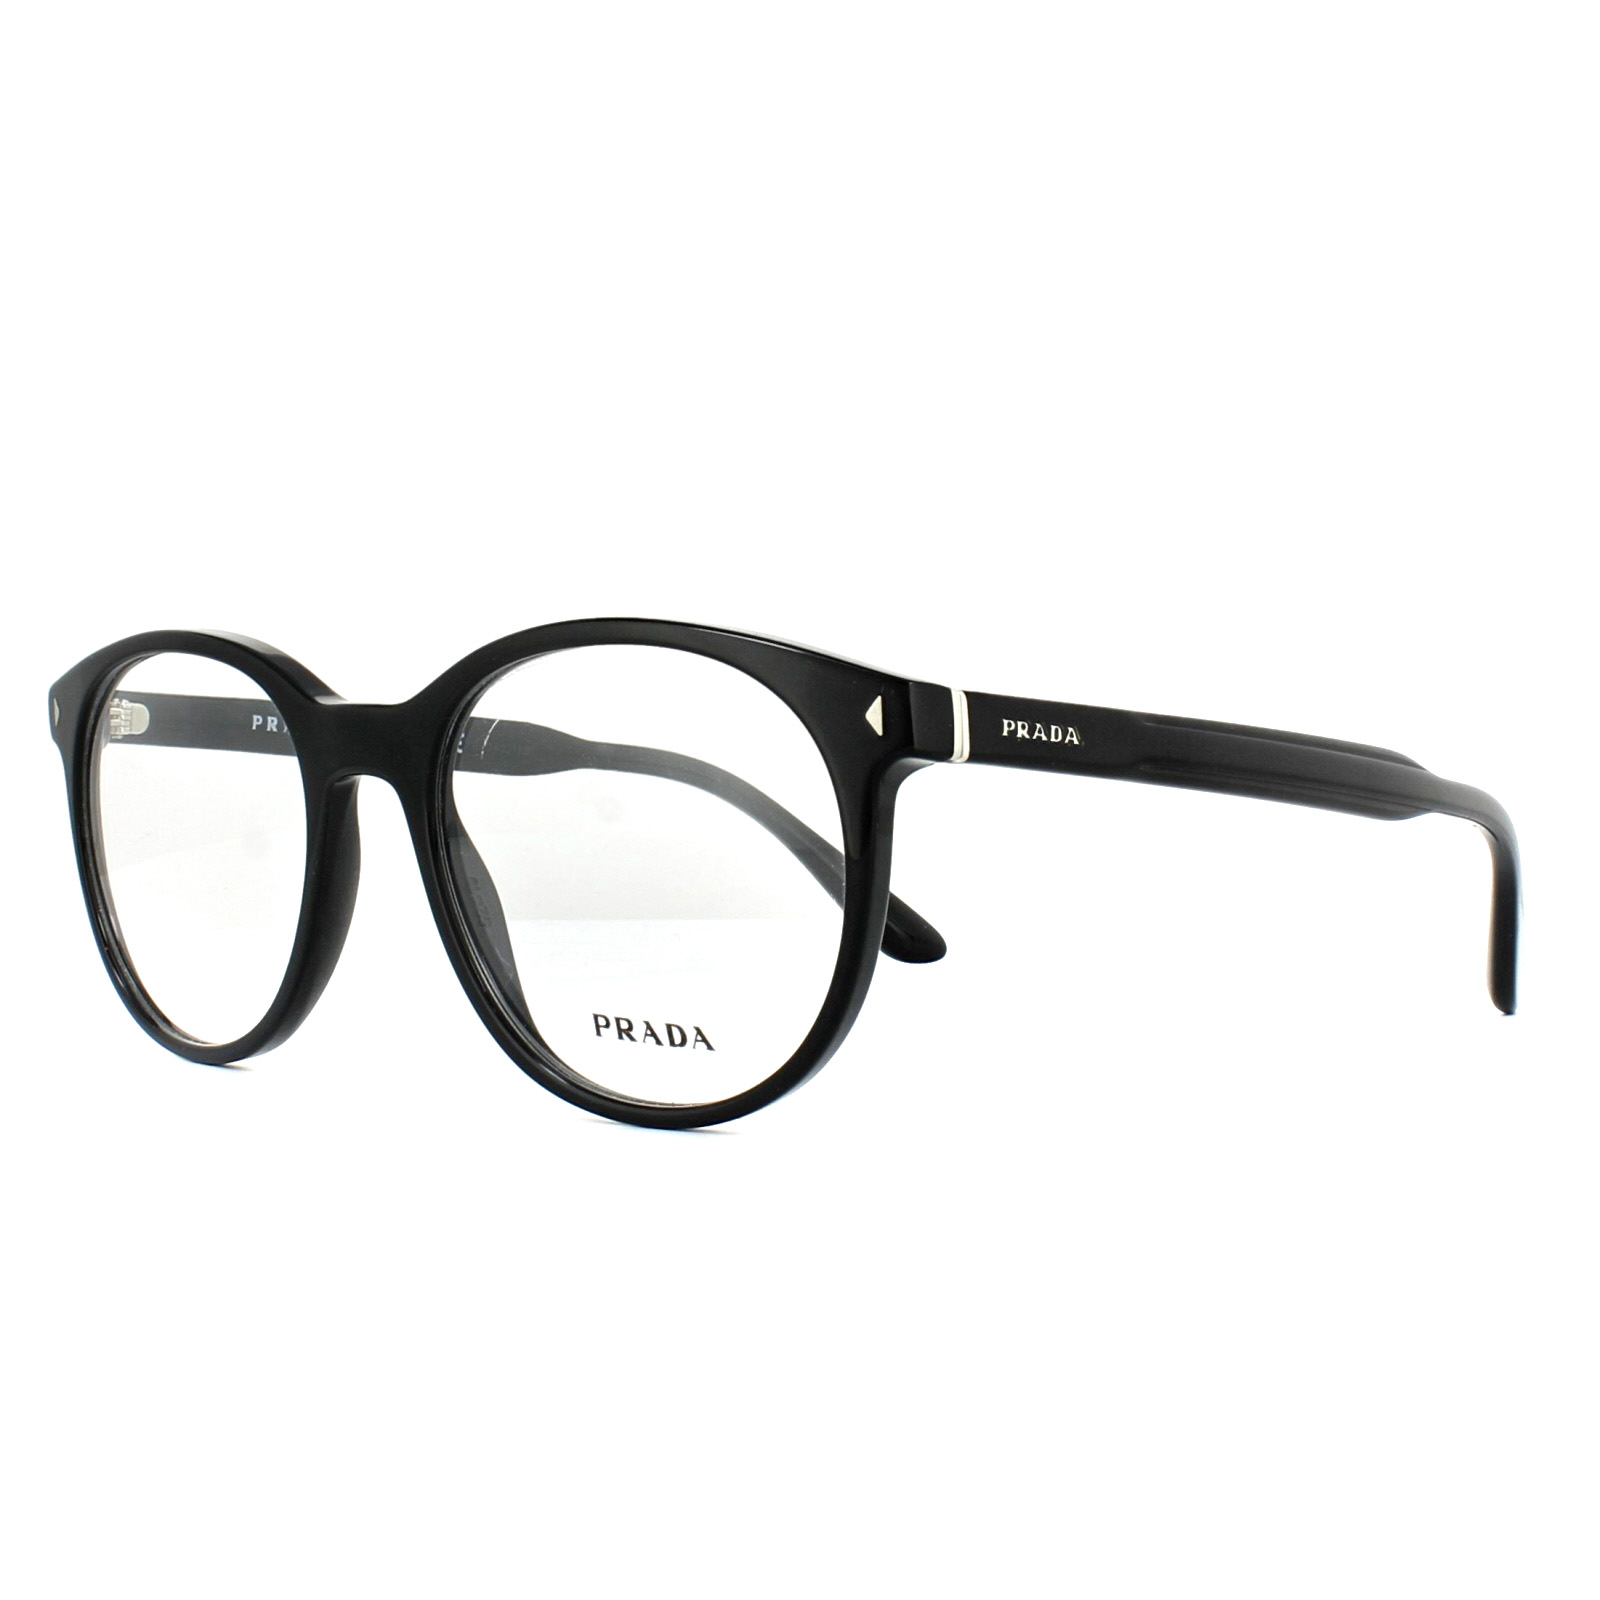 4a2c9176687 Prada Glasses Frames PR14TV 1AB1O1 Black 52mm Mens 8053672674088